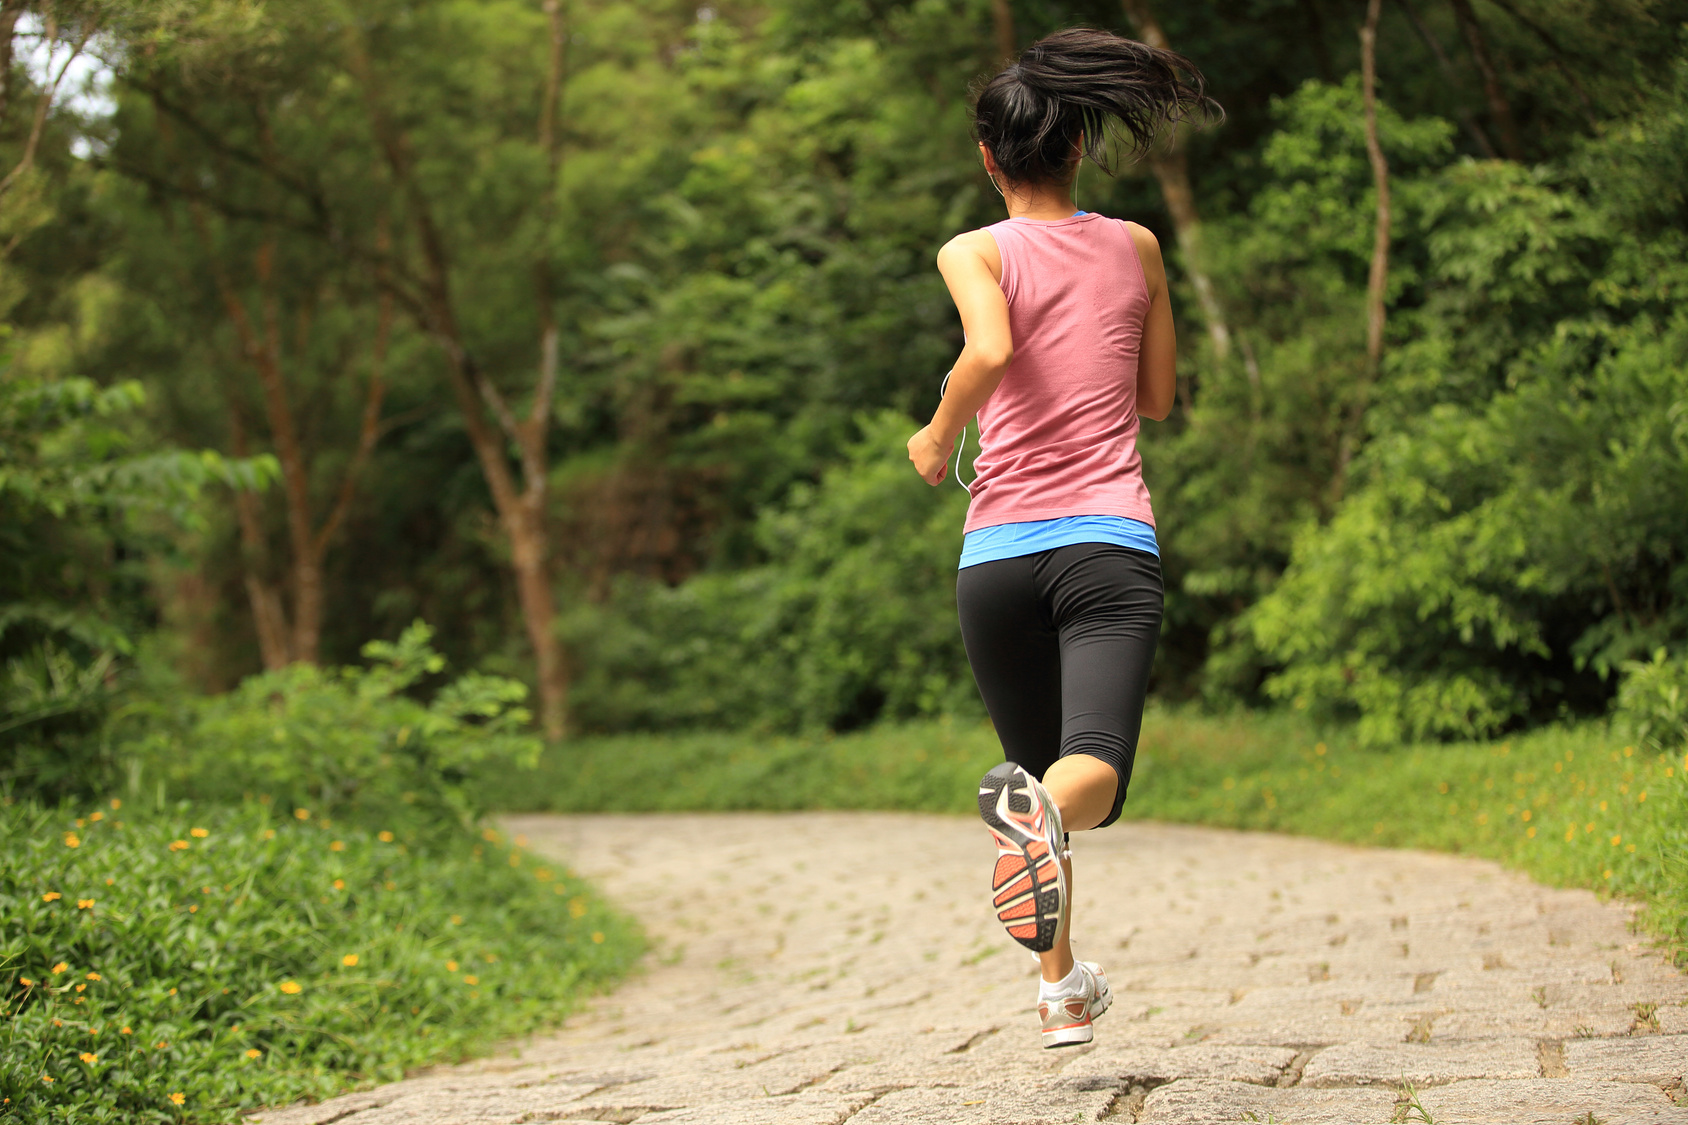 do you want to improve running cadence?